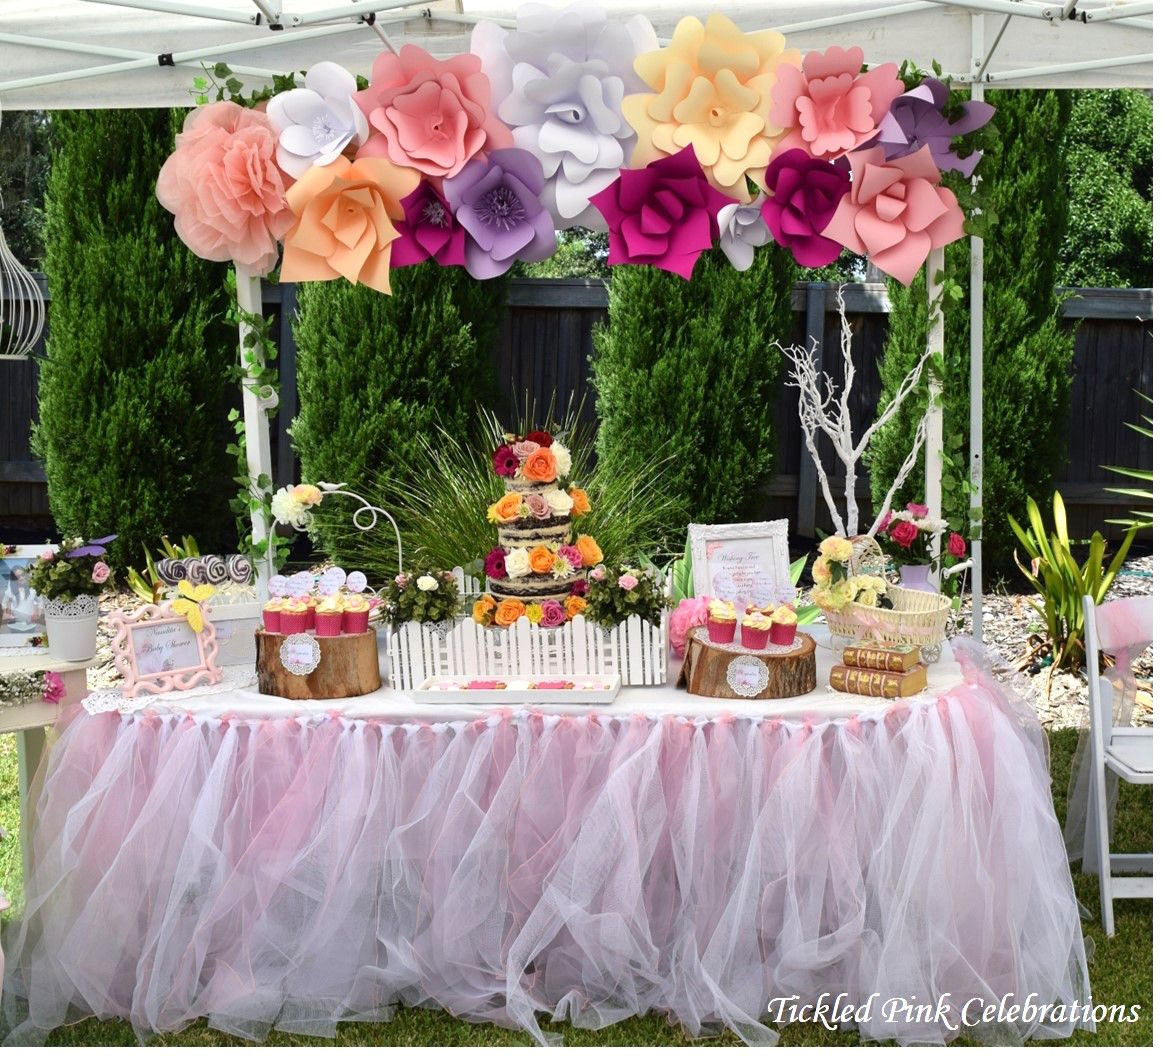 Little Wish Parties Enchanted Garden Baby Shower https